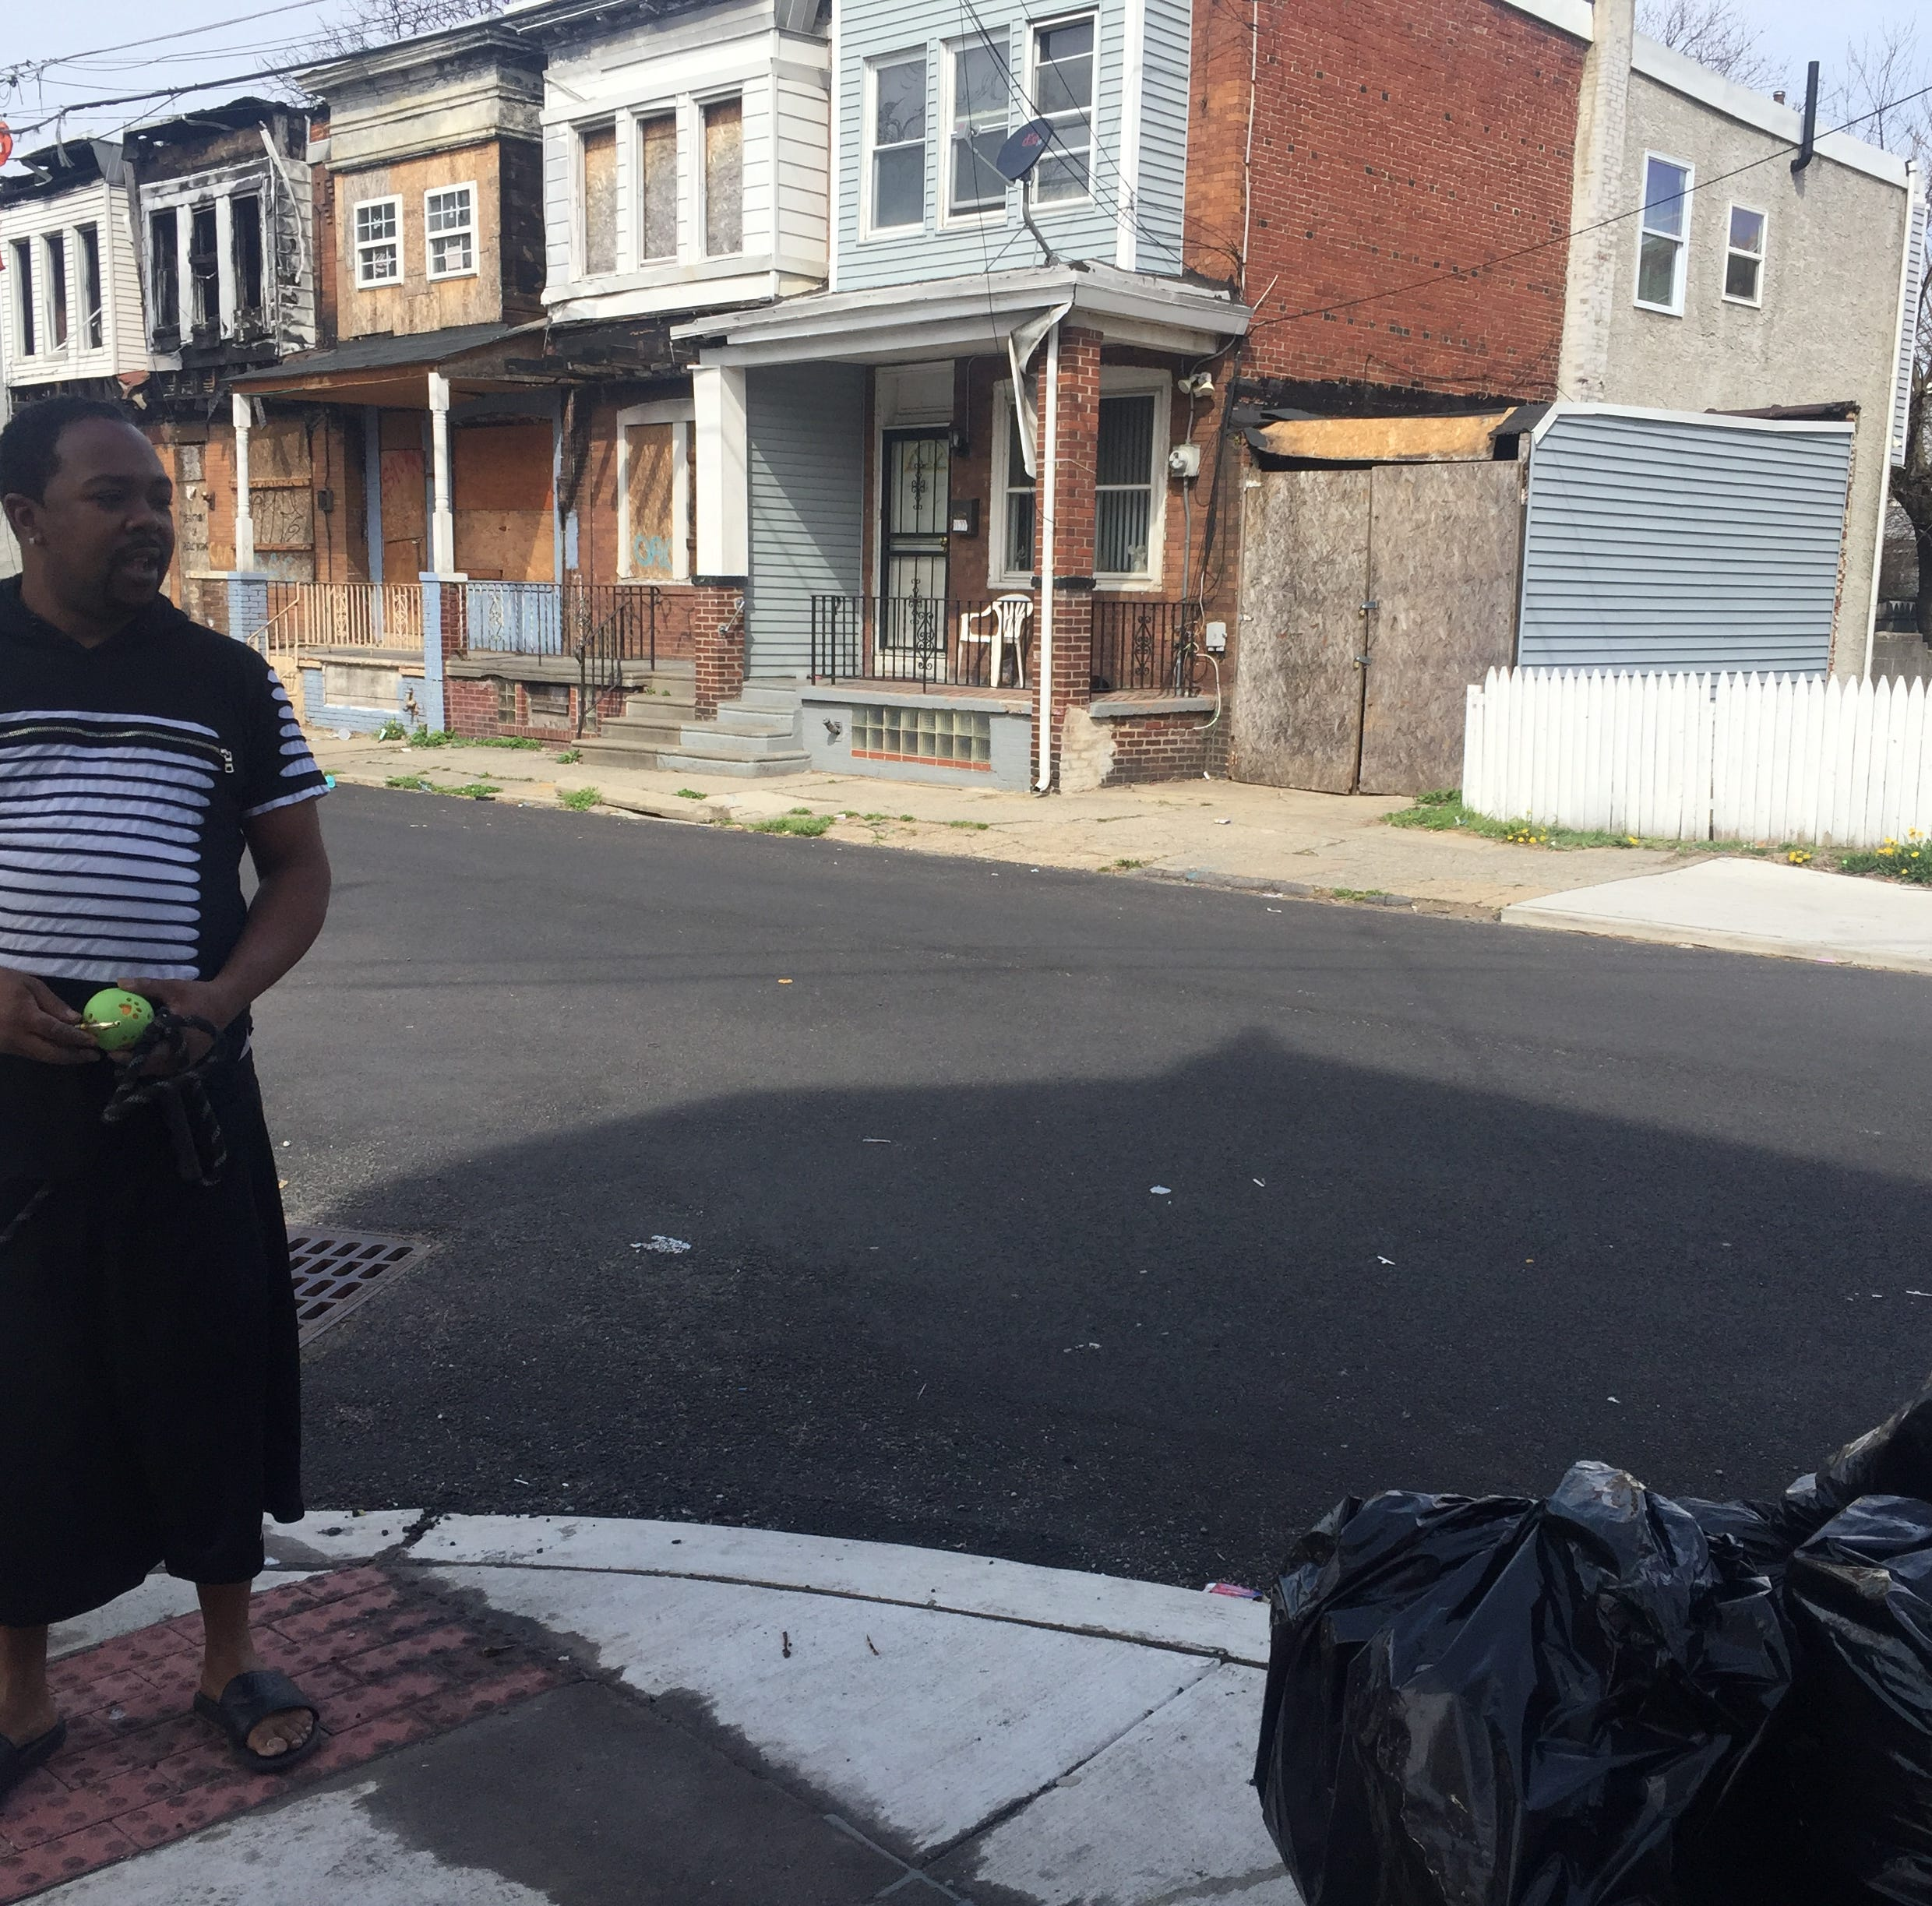 'You wake up and it's there': Camden residents talk trash, illegal dumping